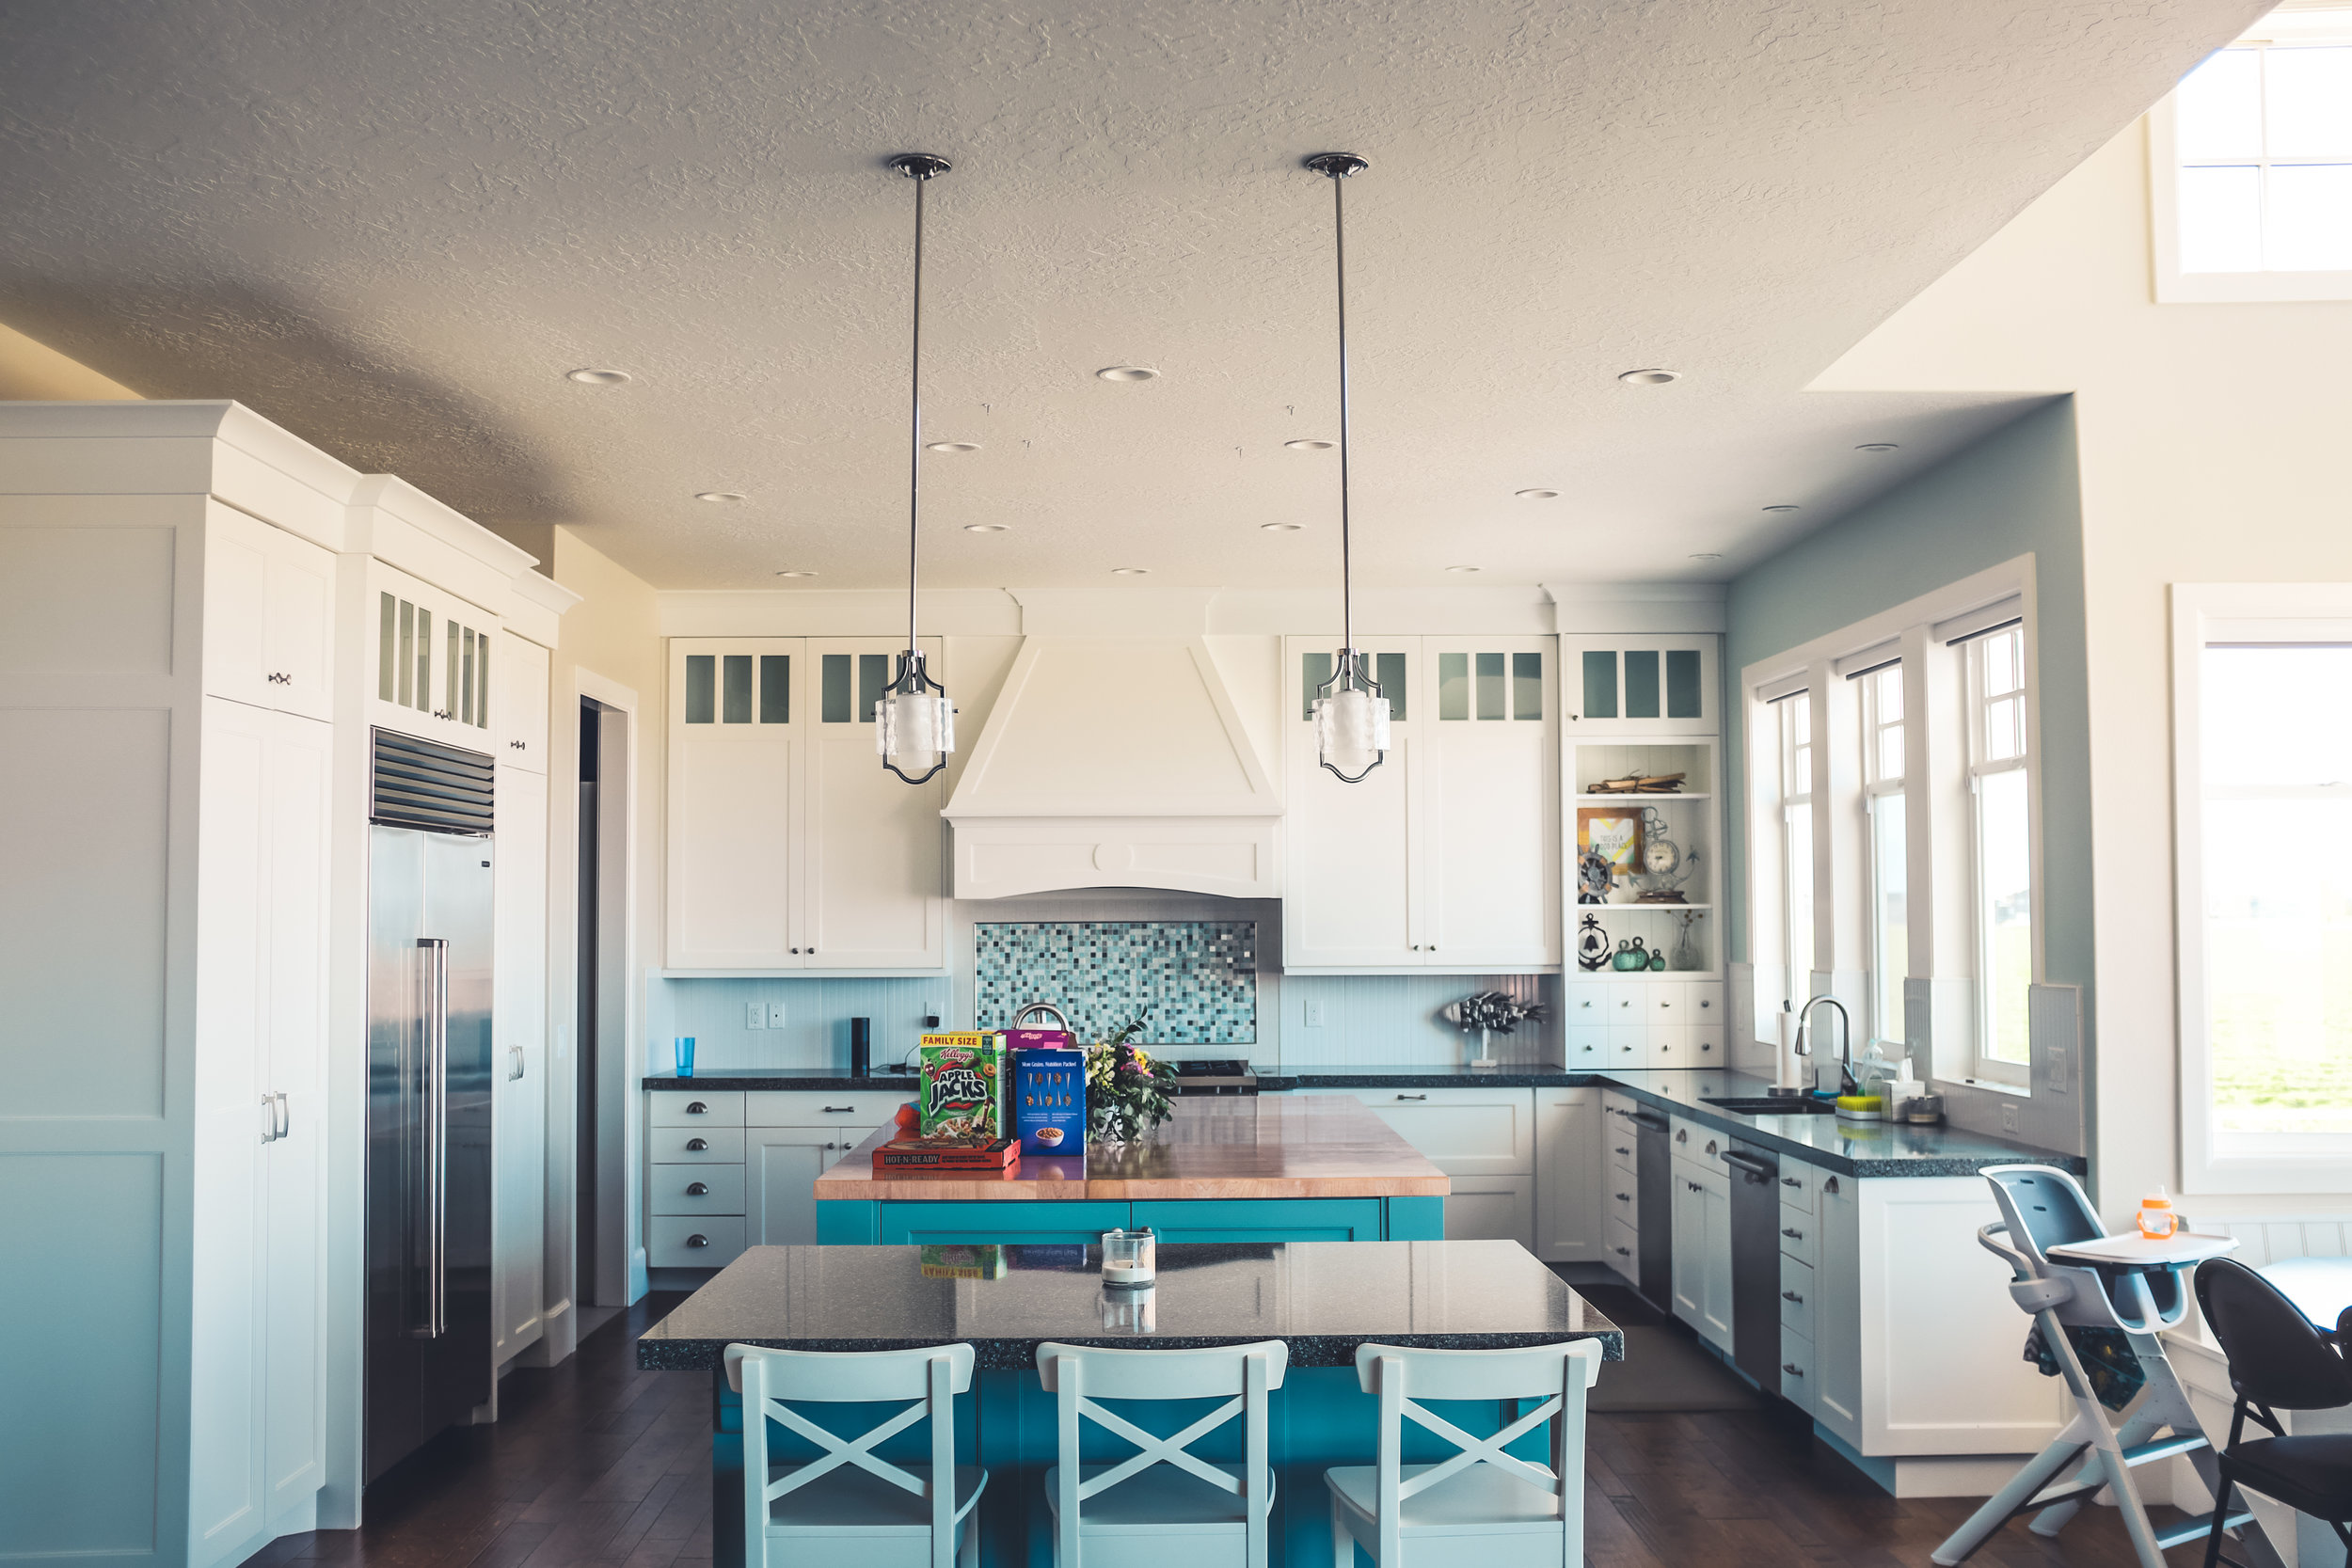 Home Organizing - Our home organizing service implements simple and long-lasting solutions to challenges clients face with how the space is arranged, how it functions, and how those living (perhaps working) in it communicate and operate with one another. Read More.